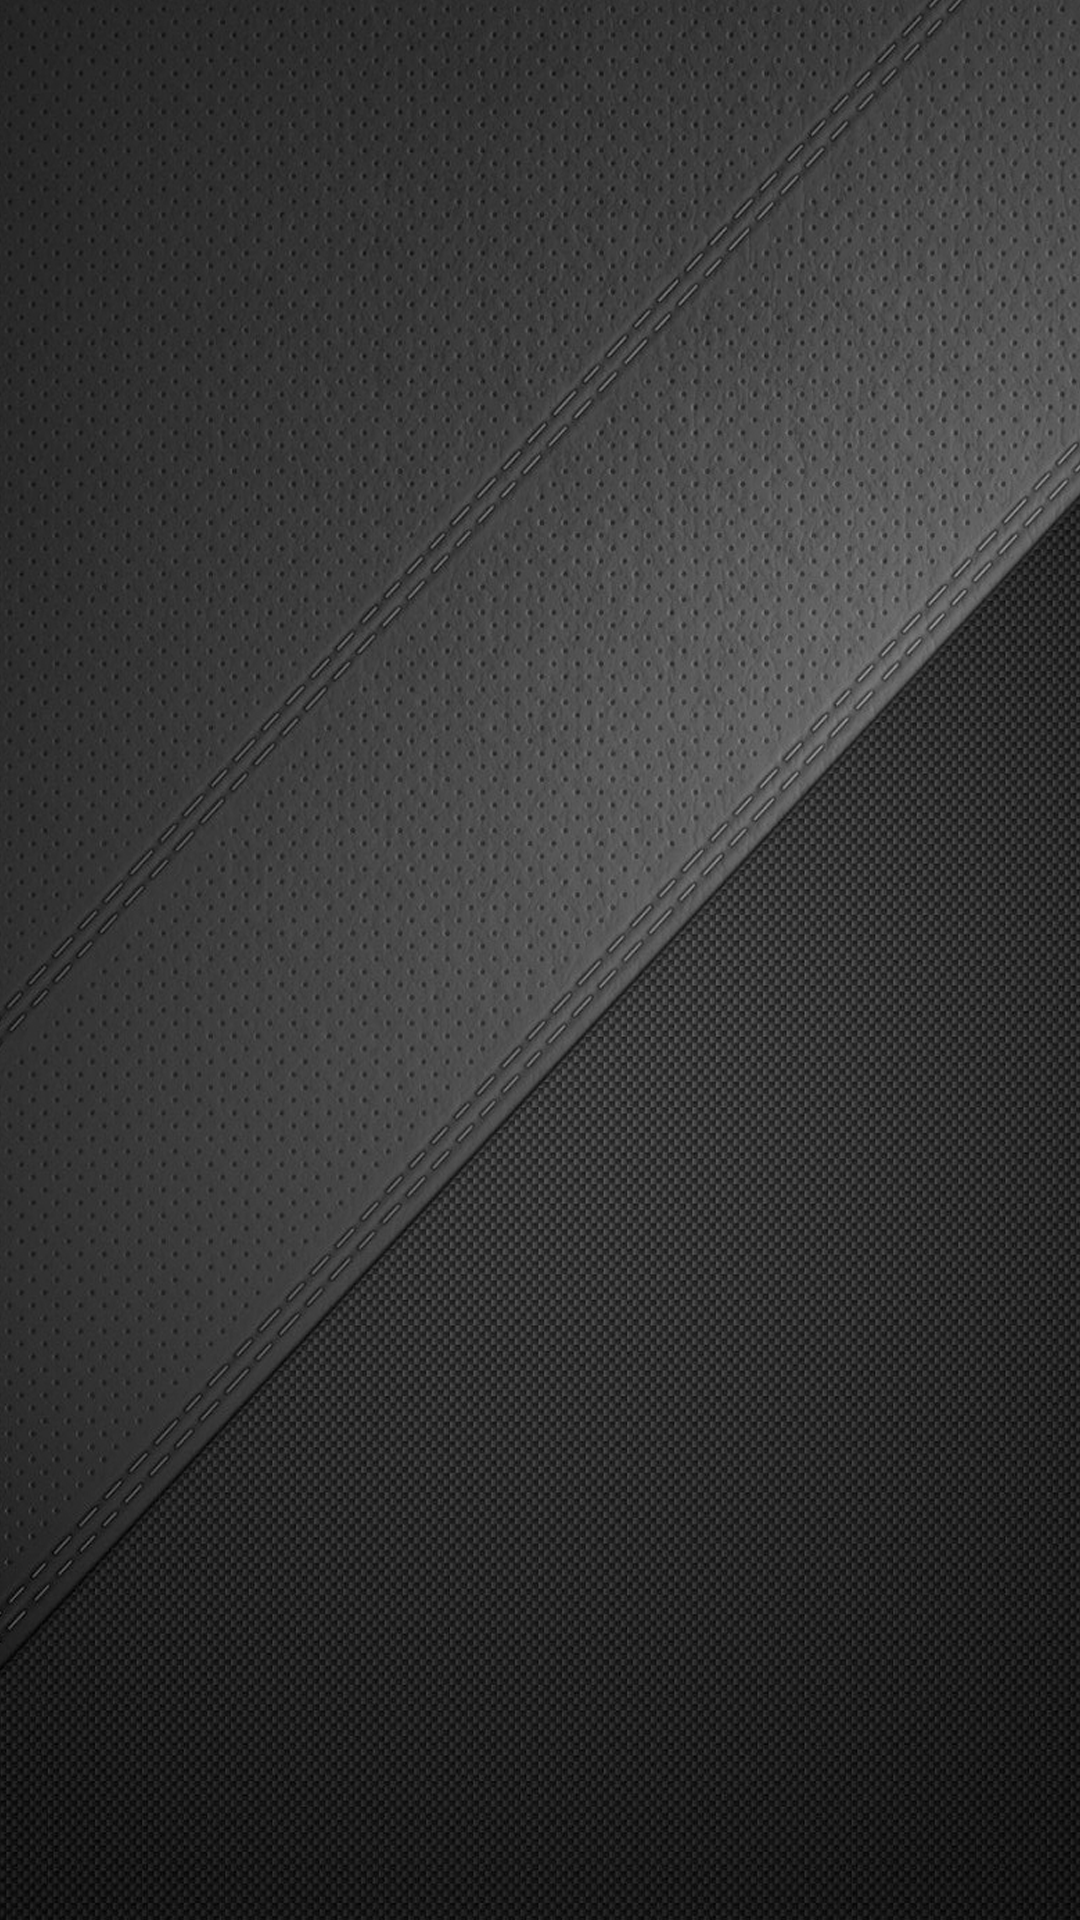 Black Leather Wallpapers Top Free Black Leather